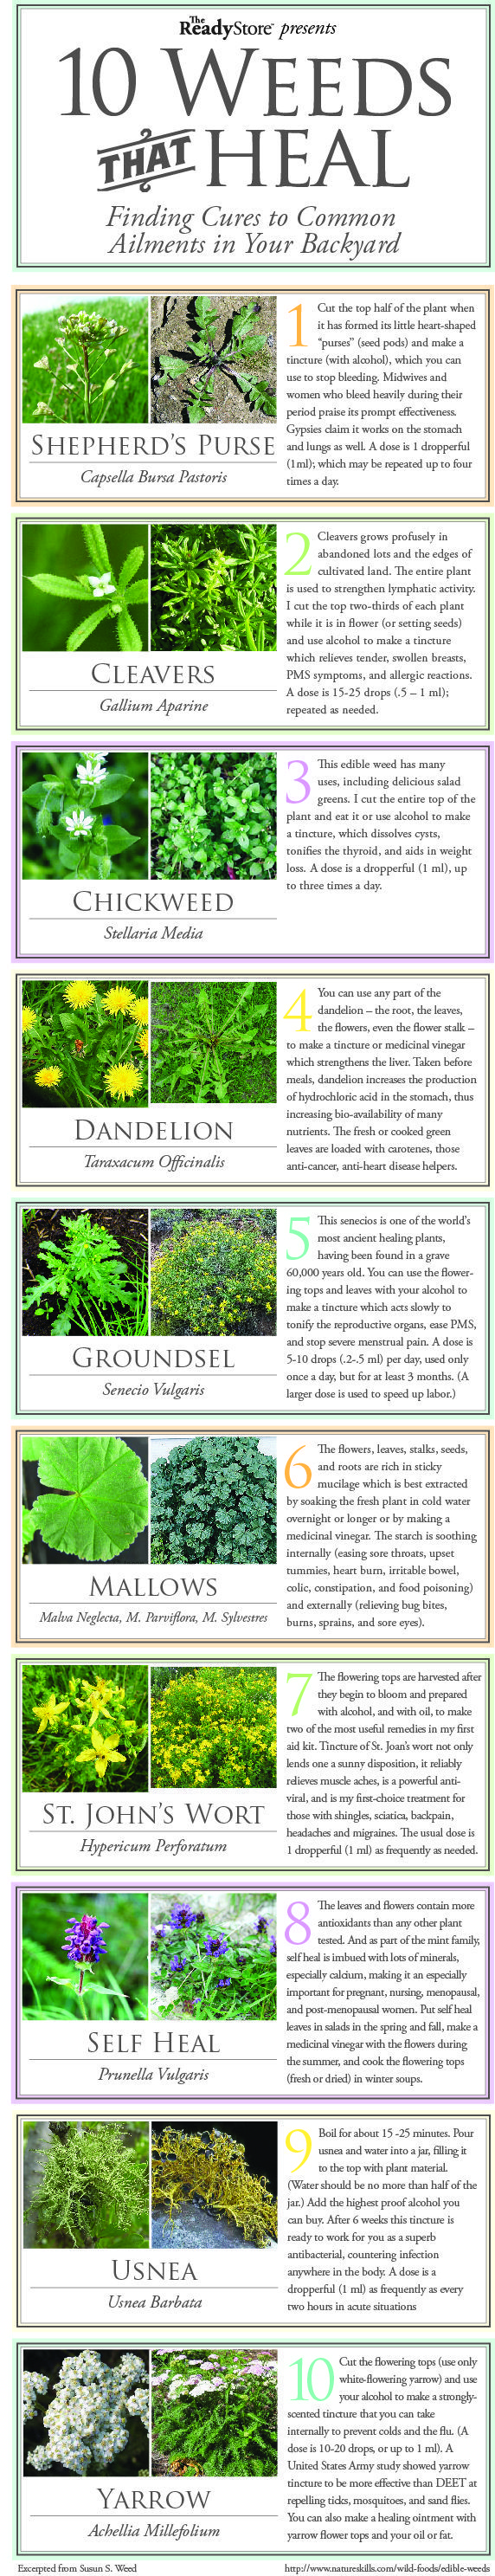 Common weeds that healHealing Weed, 10 Weed, Medicine Plants, Healing Plants, Gardens, Health, 10 Common, Common Weed, Plants That Healing